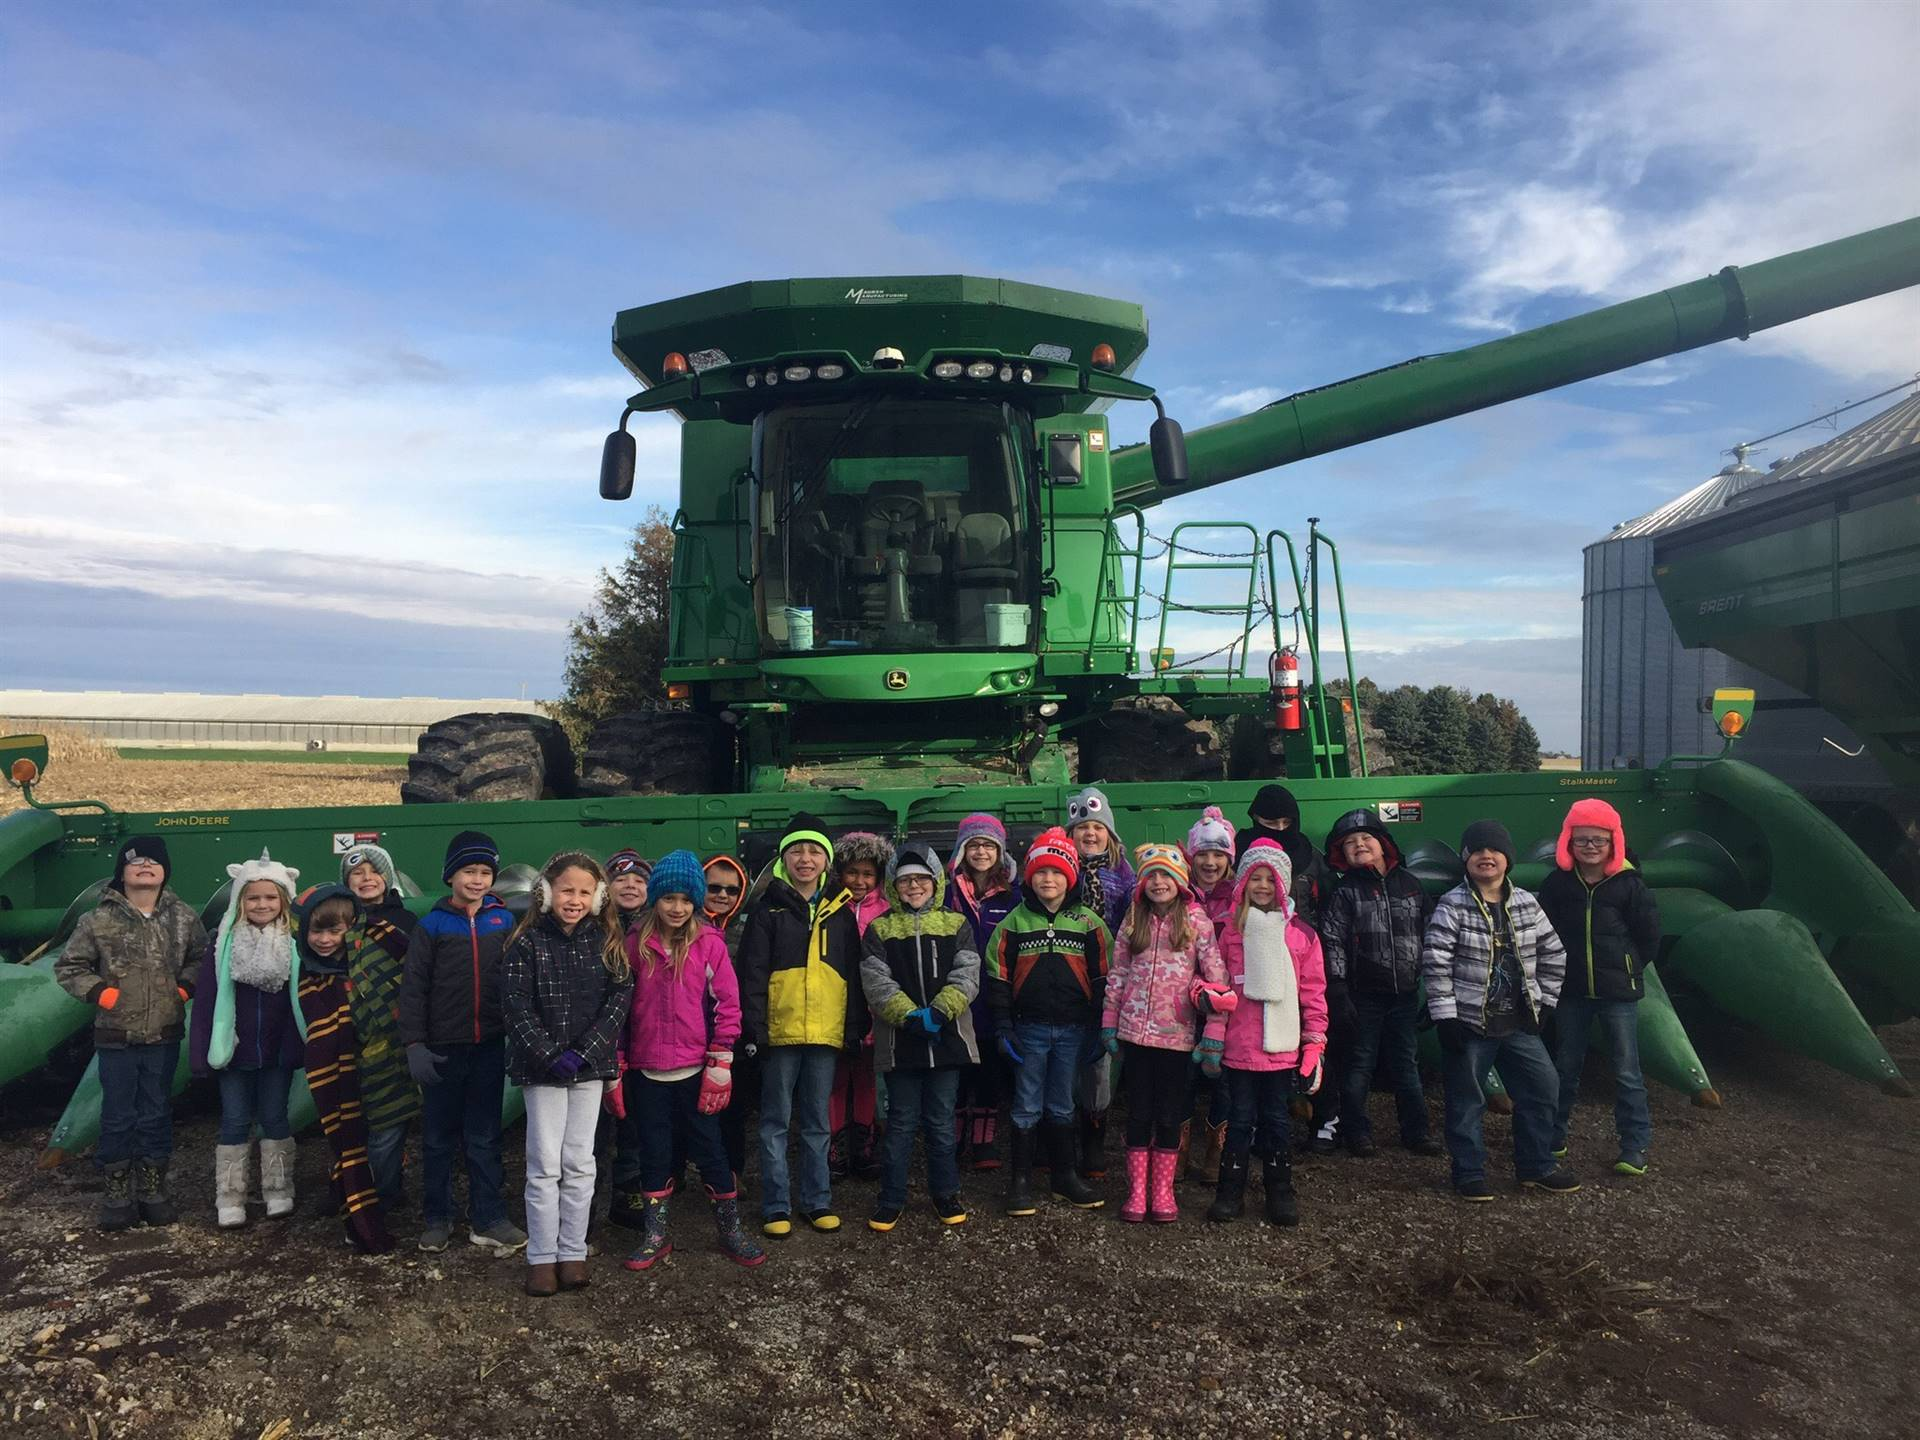 first grade students lined up in front of farm equipment